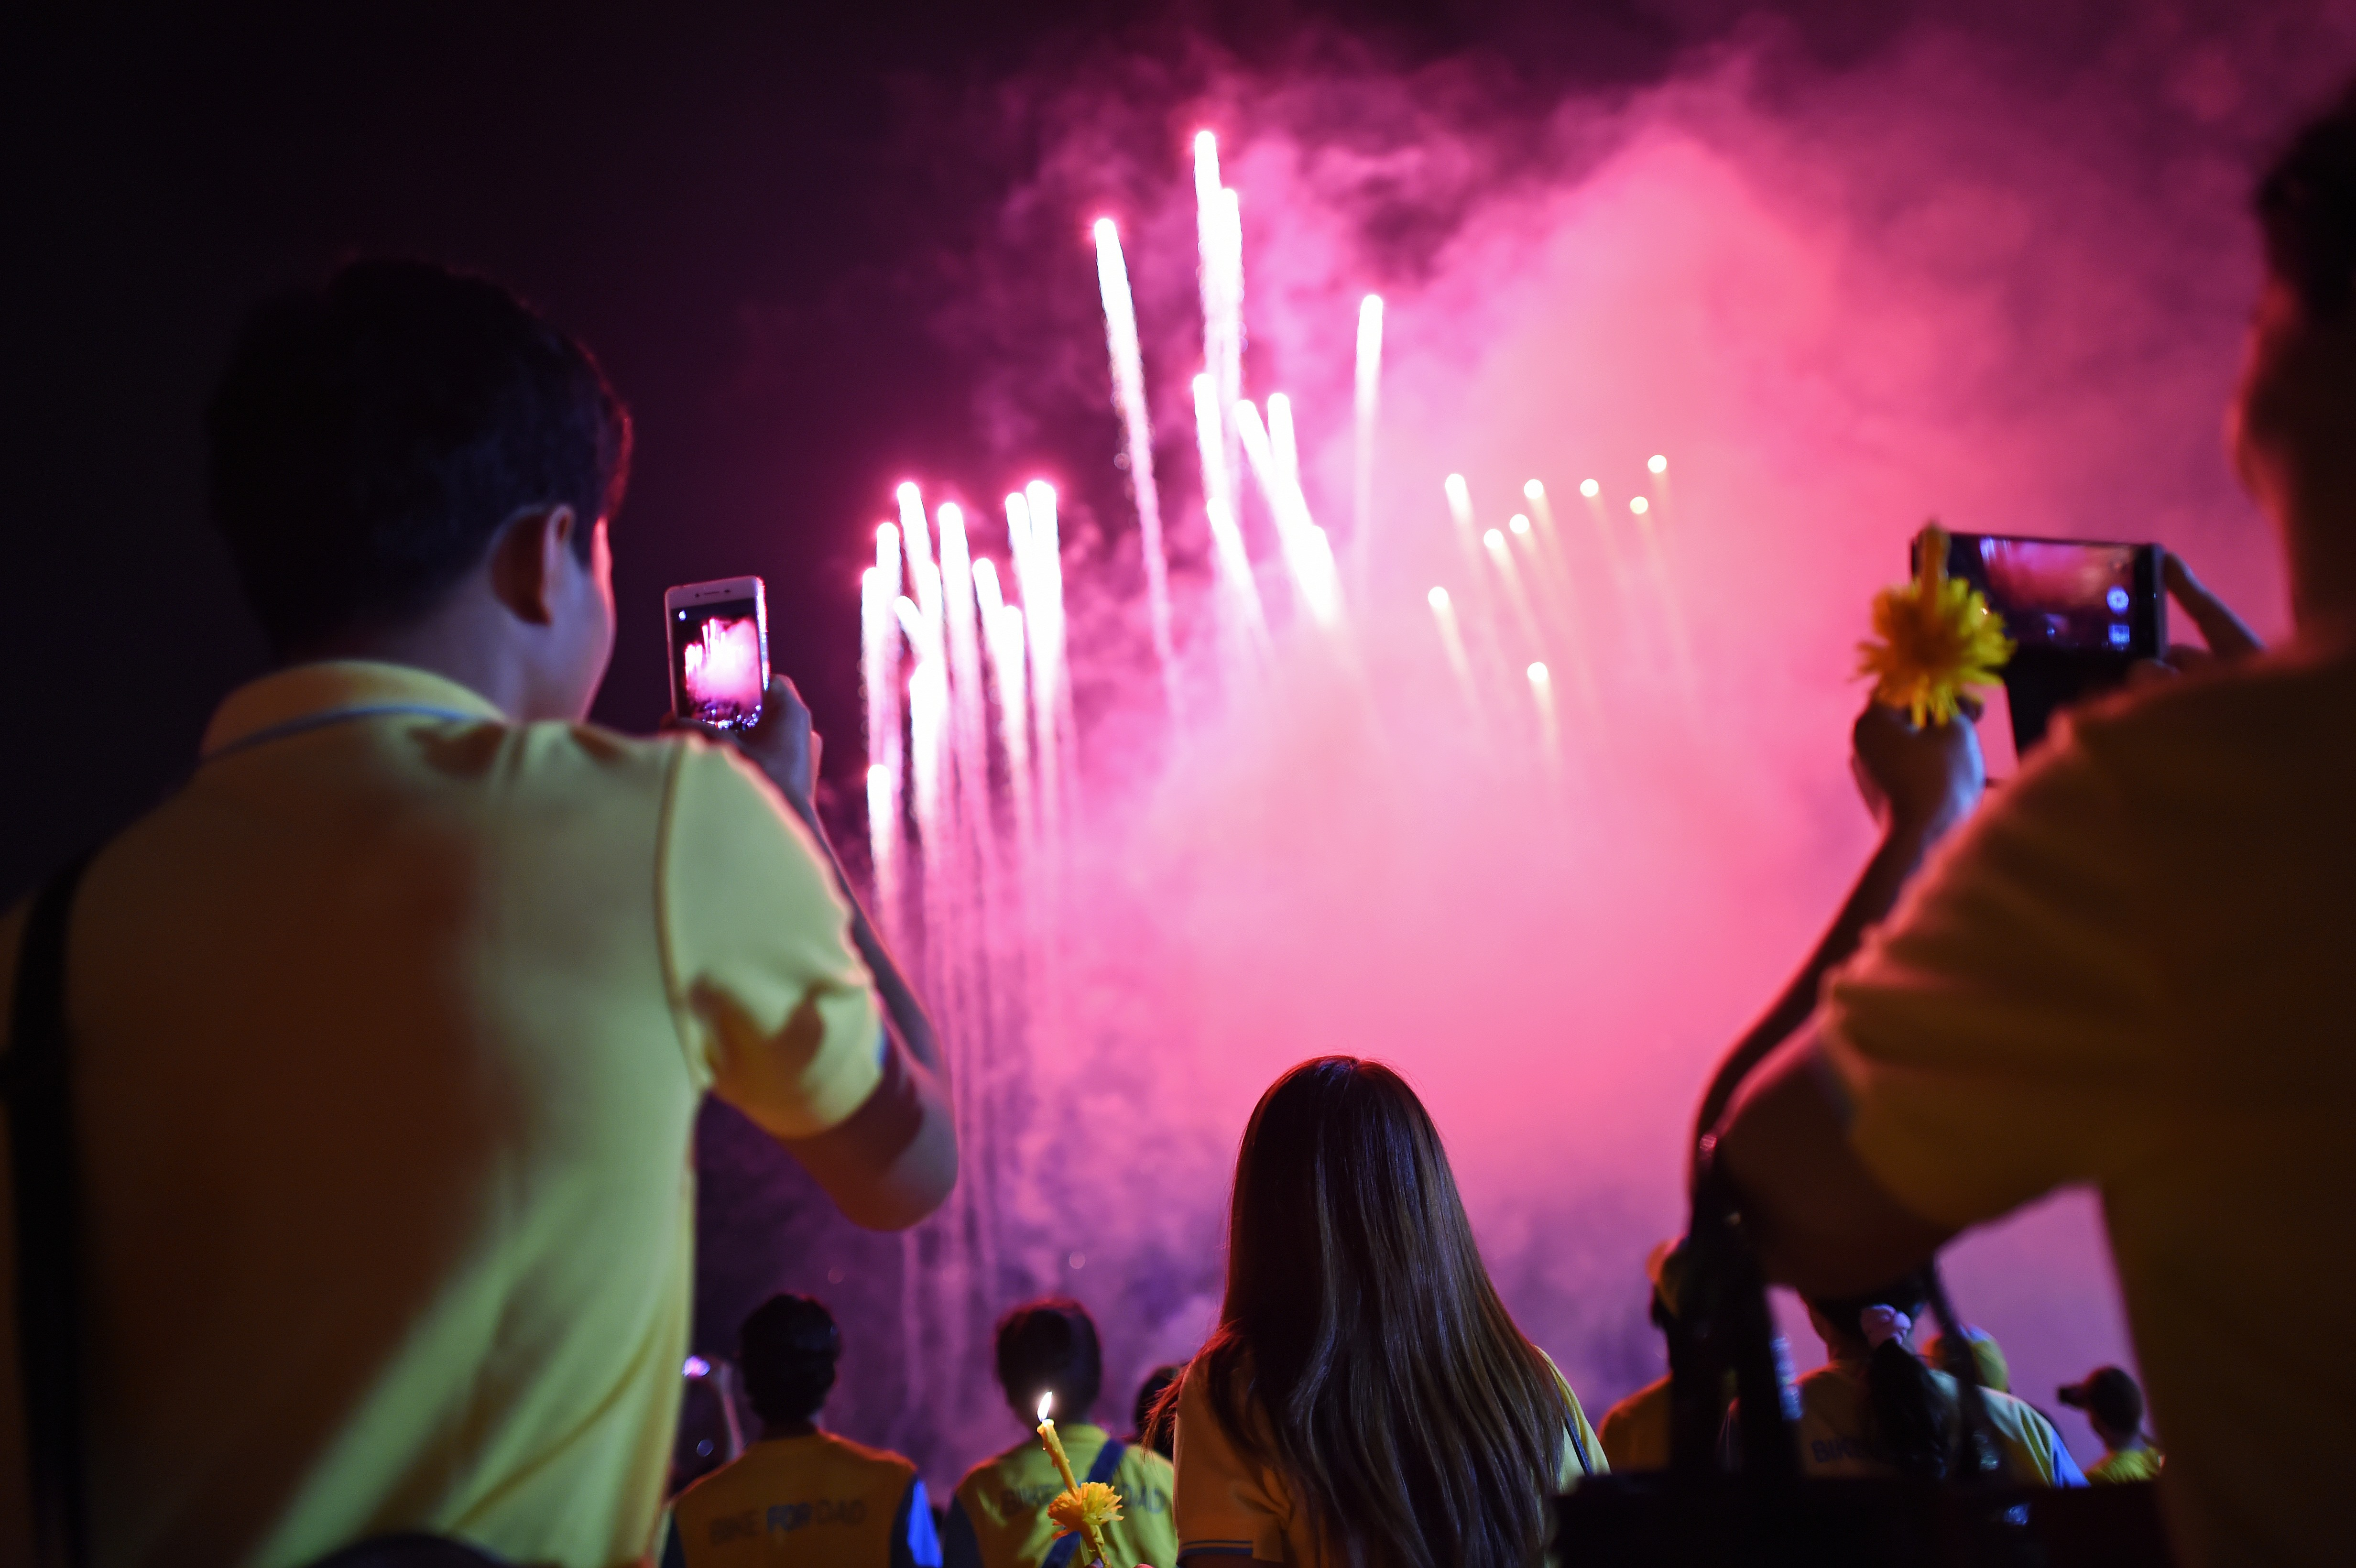 Thai well-wishers take pictures during celebrations of King Bhumibol Adulyadej's 88th birthday in Bangkok, on Dec. 5, 2015.